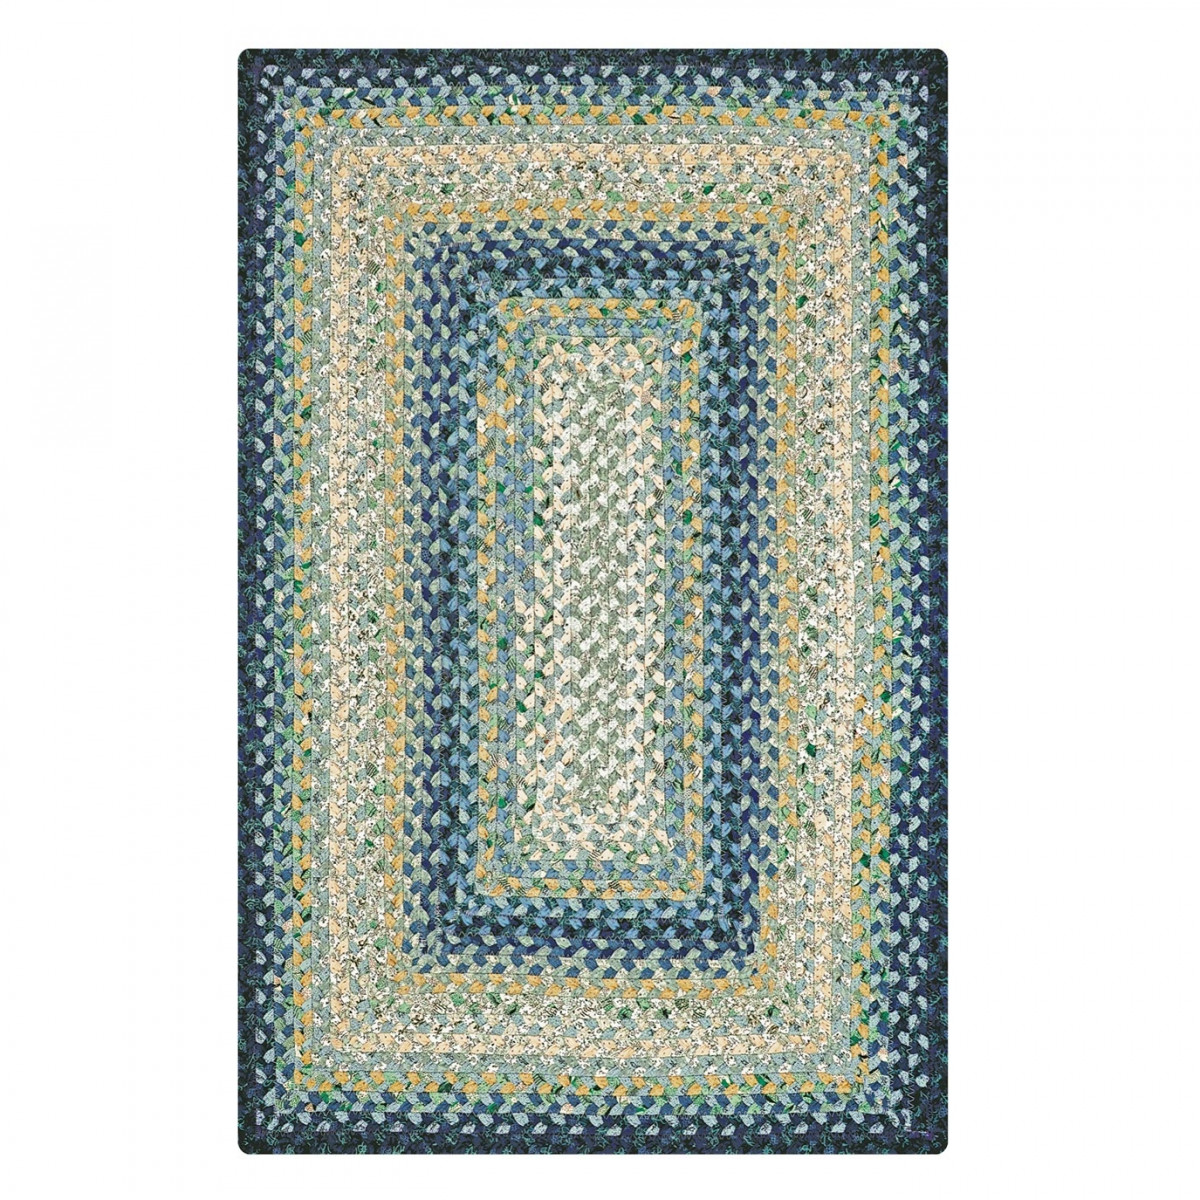 Buy Wedgewood Blue Cotton Braided Rugs Online Homespice